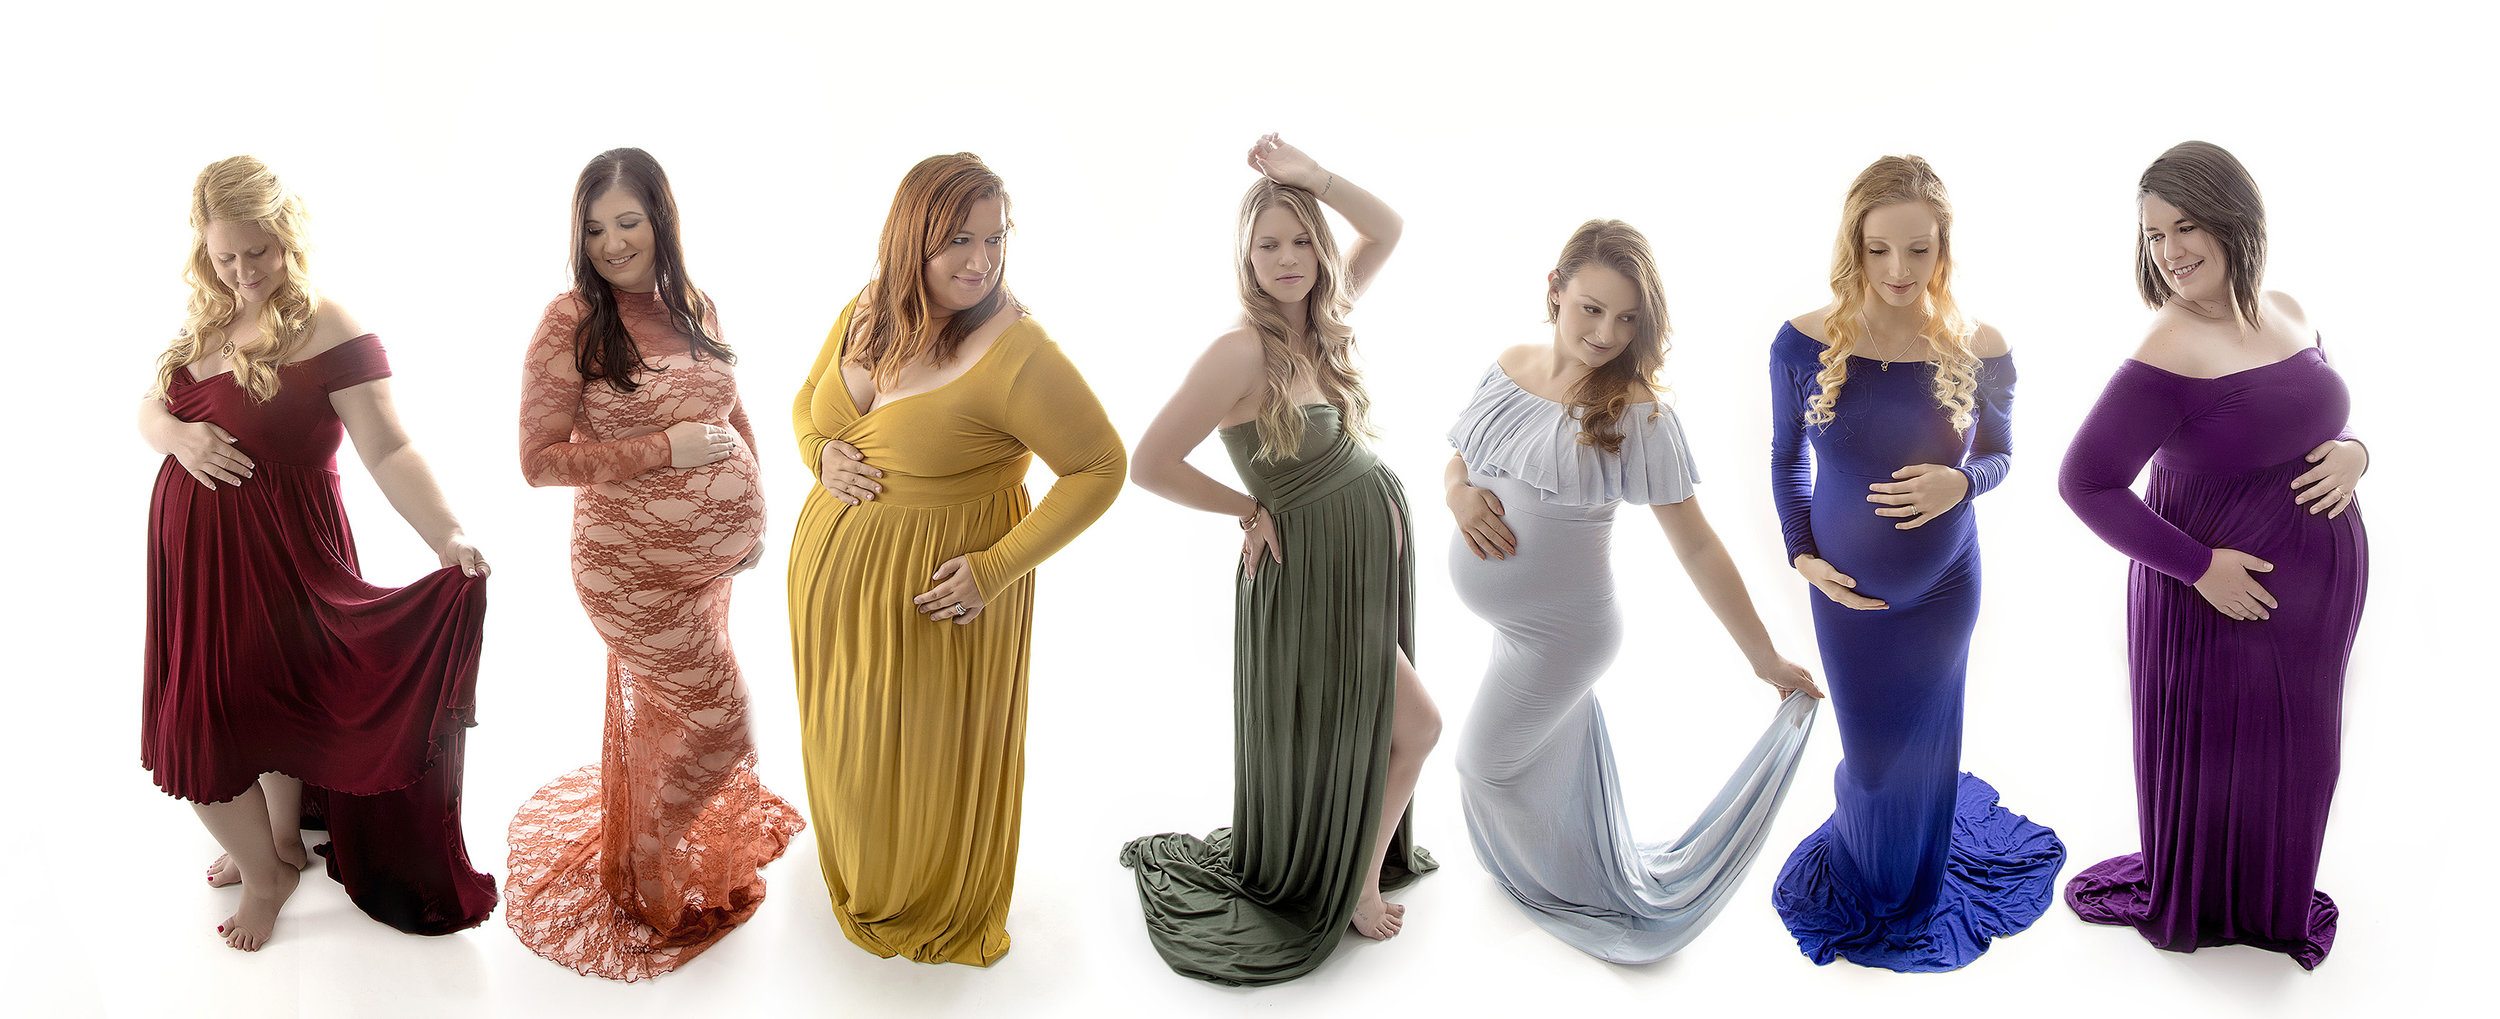 AngieEnglerth_RainbowMaternityProject_GroupShot.jpg